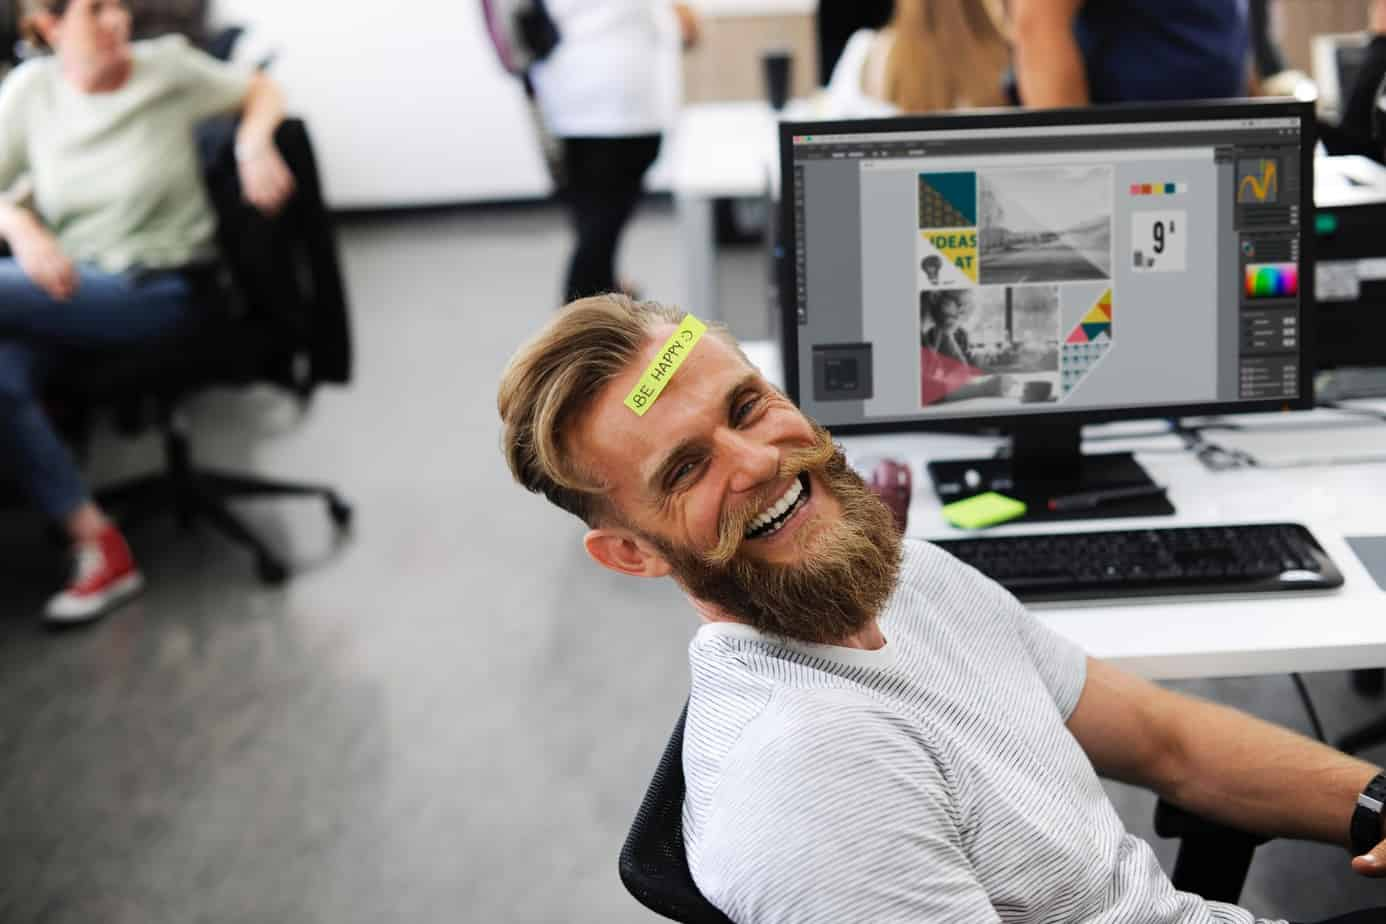 Laughing man sitting in front of a computer